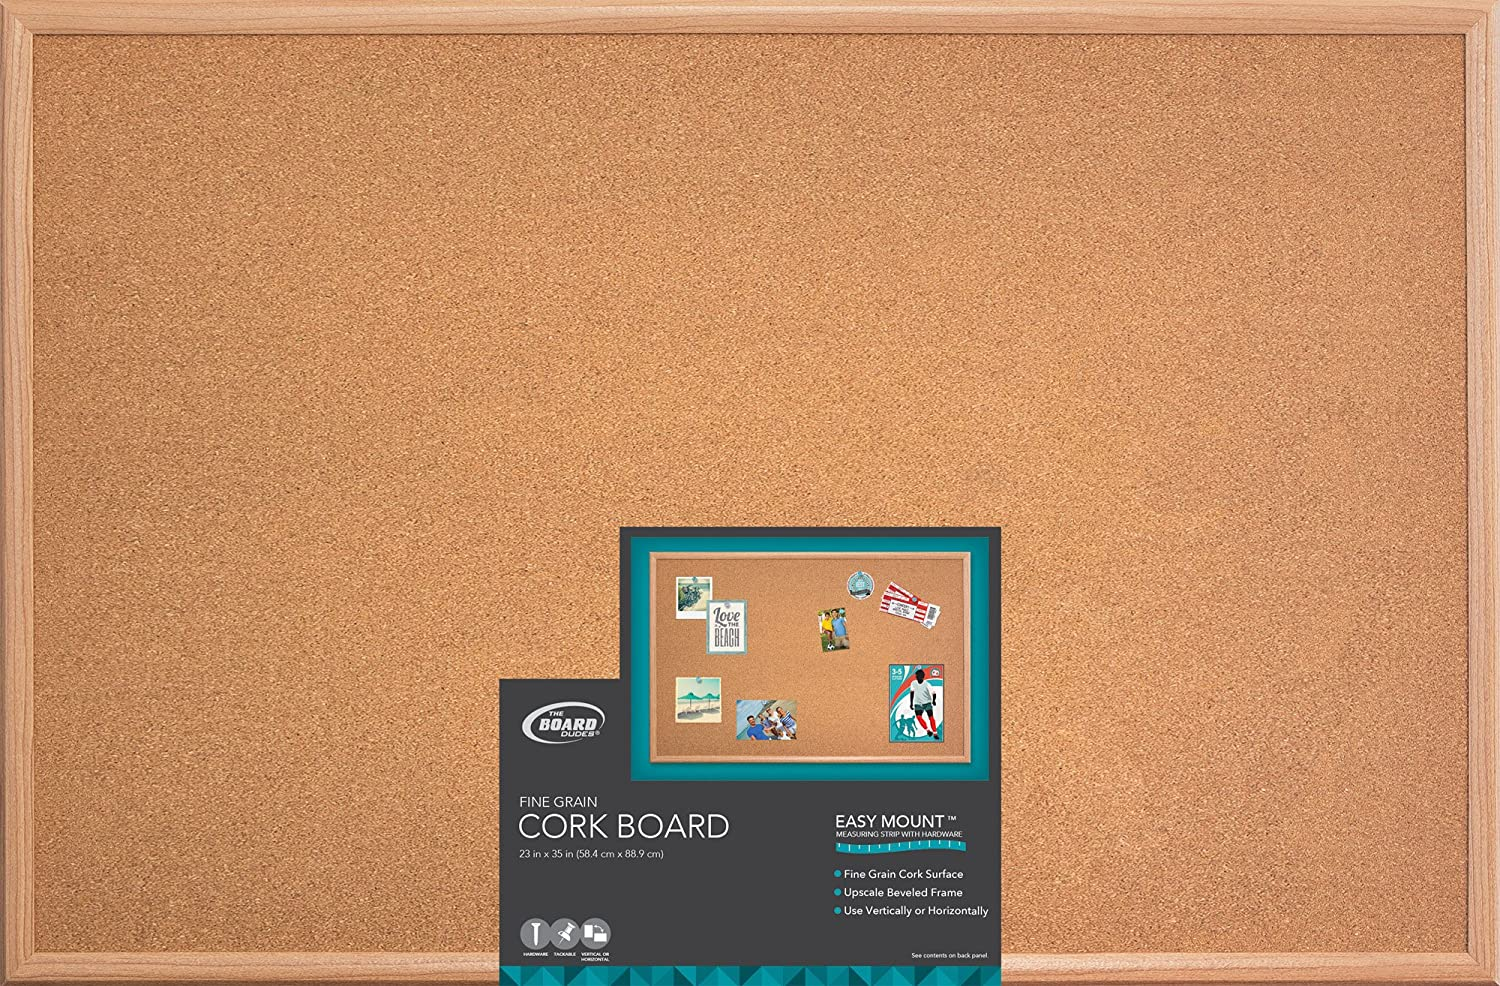 amazoncom board dudes 23 x 35 wood style frame cork board cxm86 dry erase boards office products